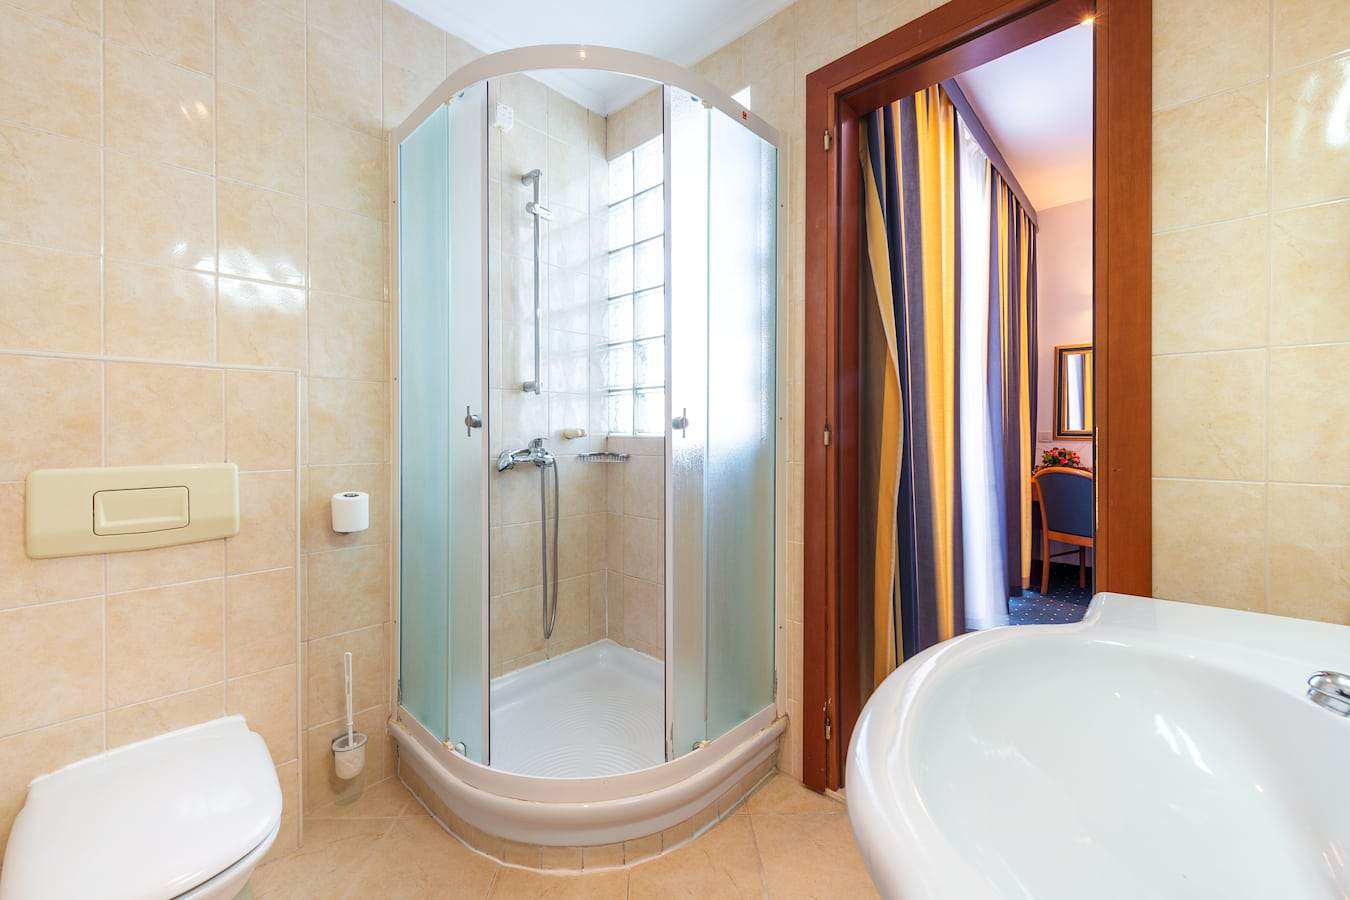 vis-hotel-dubrovnik-bathroom-shower.jpg